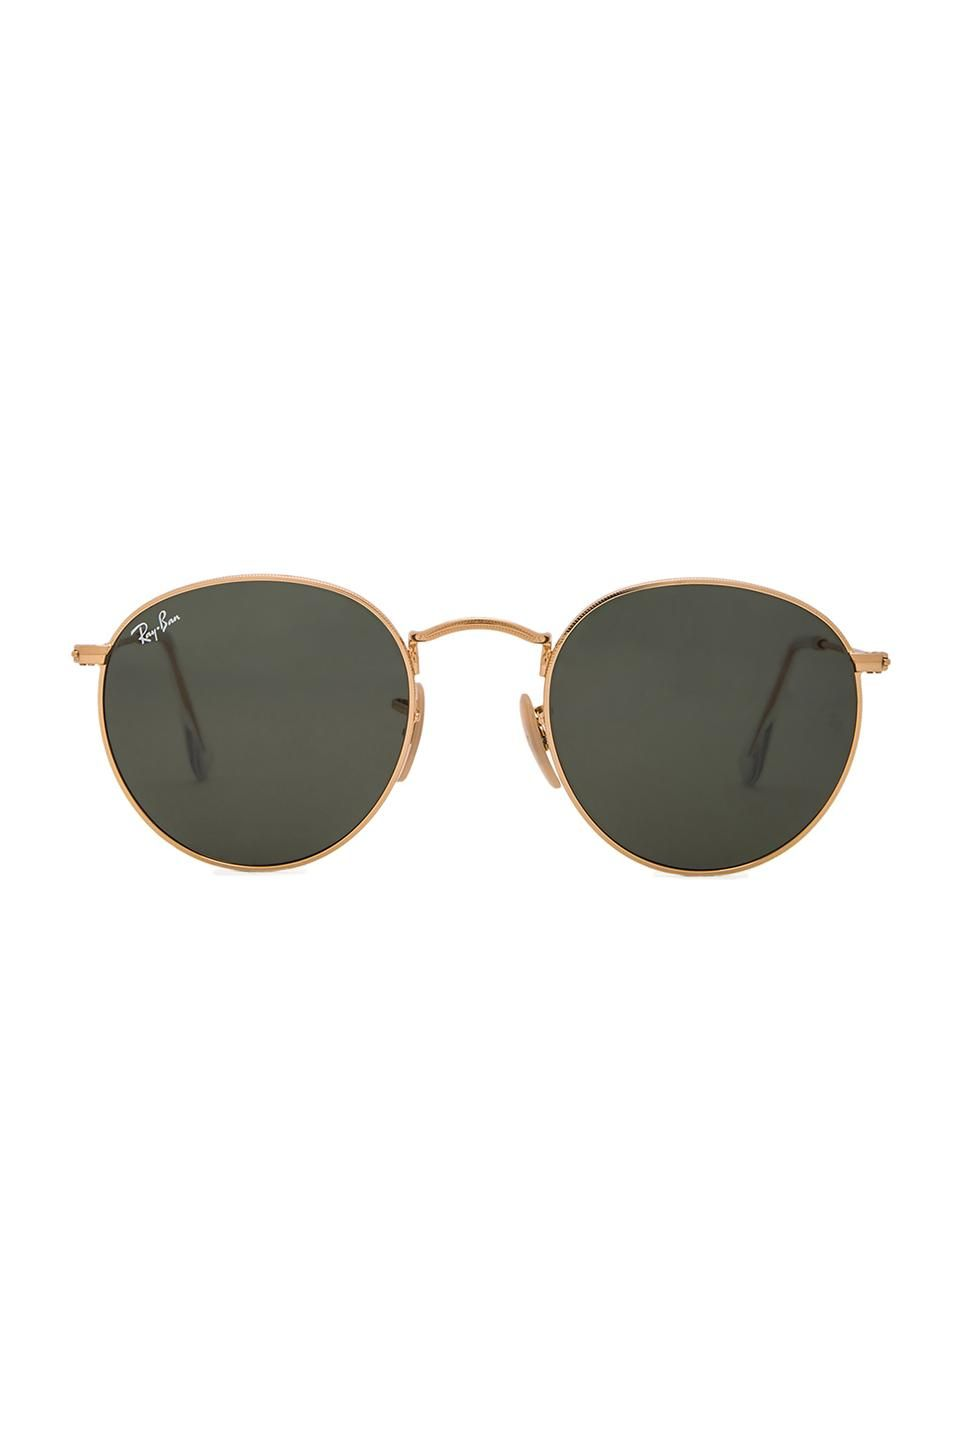 8cc067ef2e5c4 Ray-Ban Round Metal in Green Classic